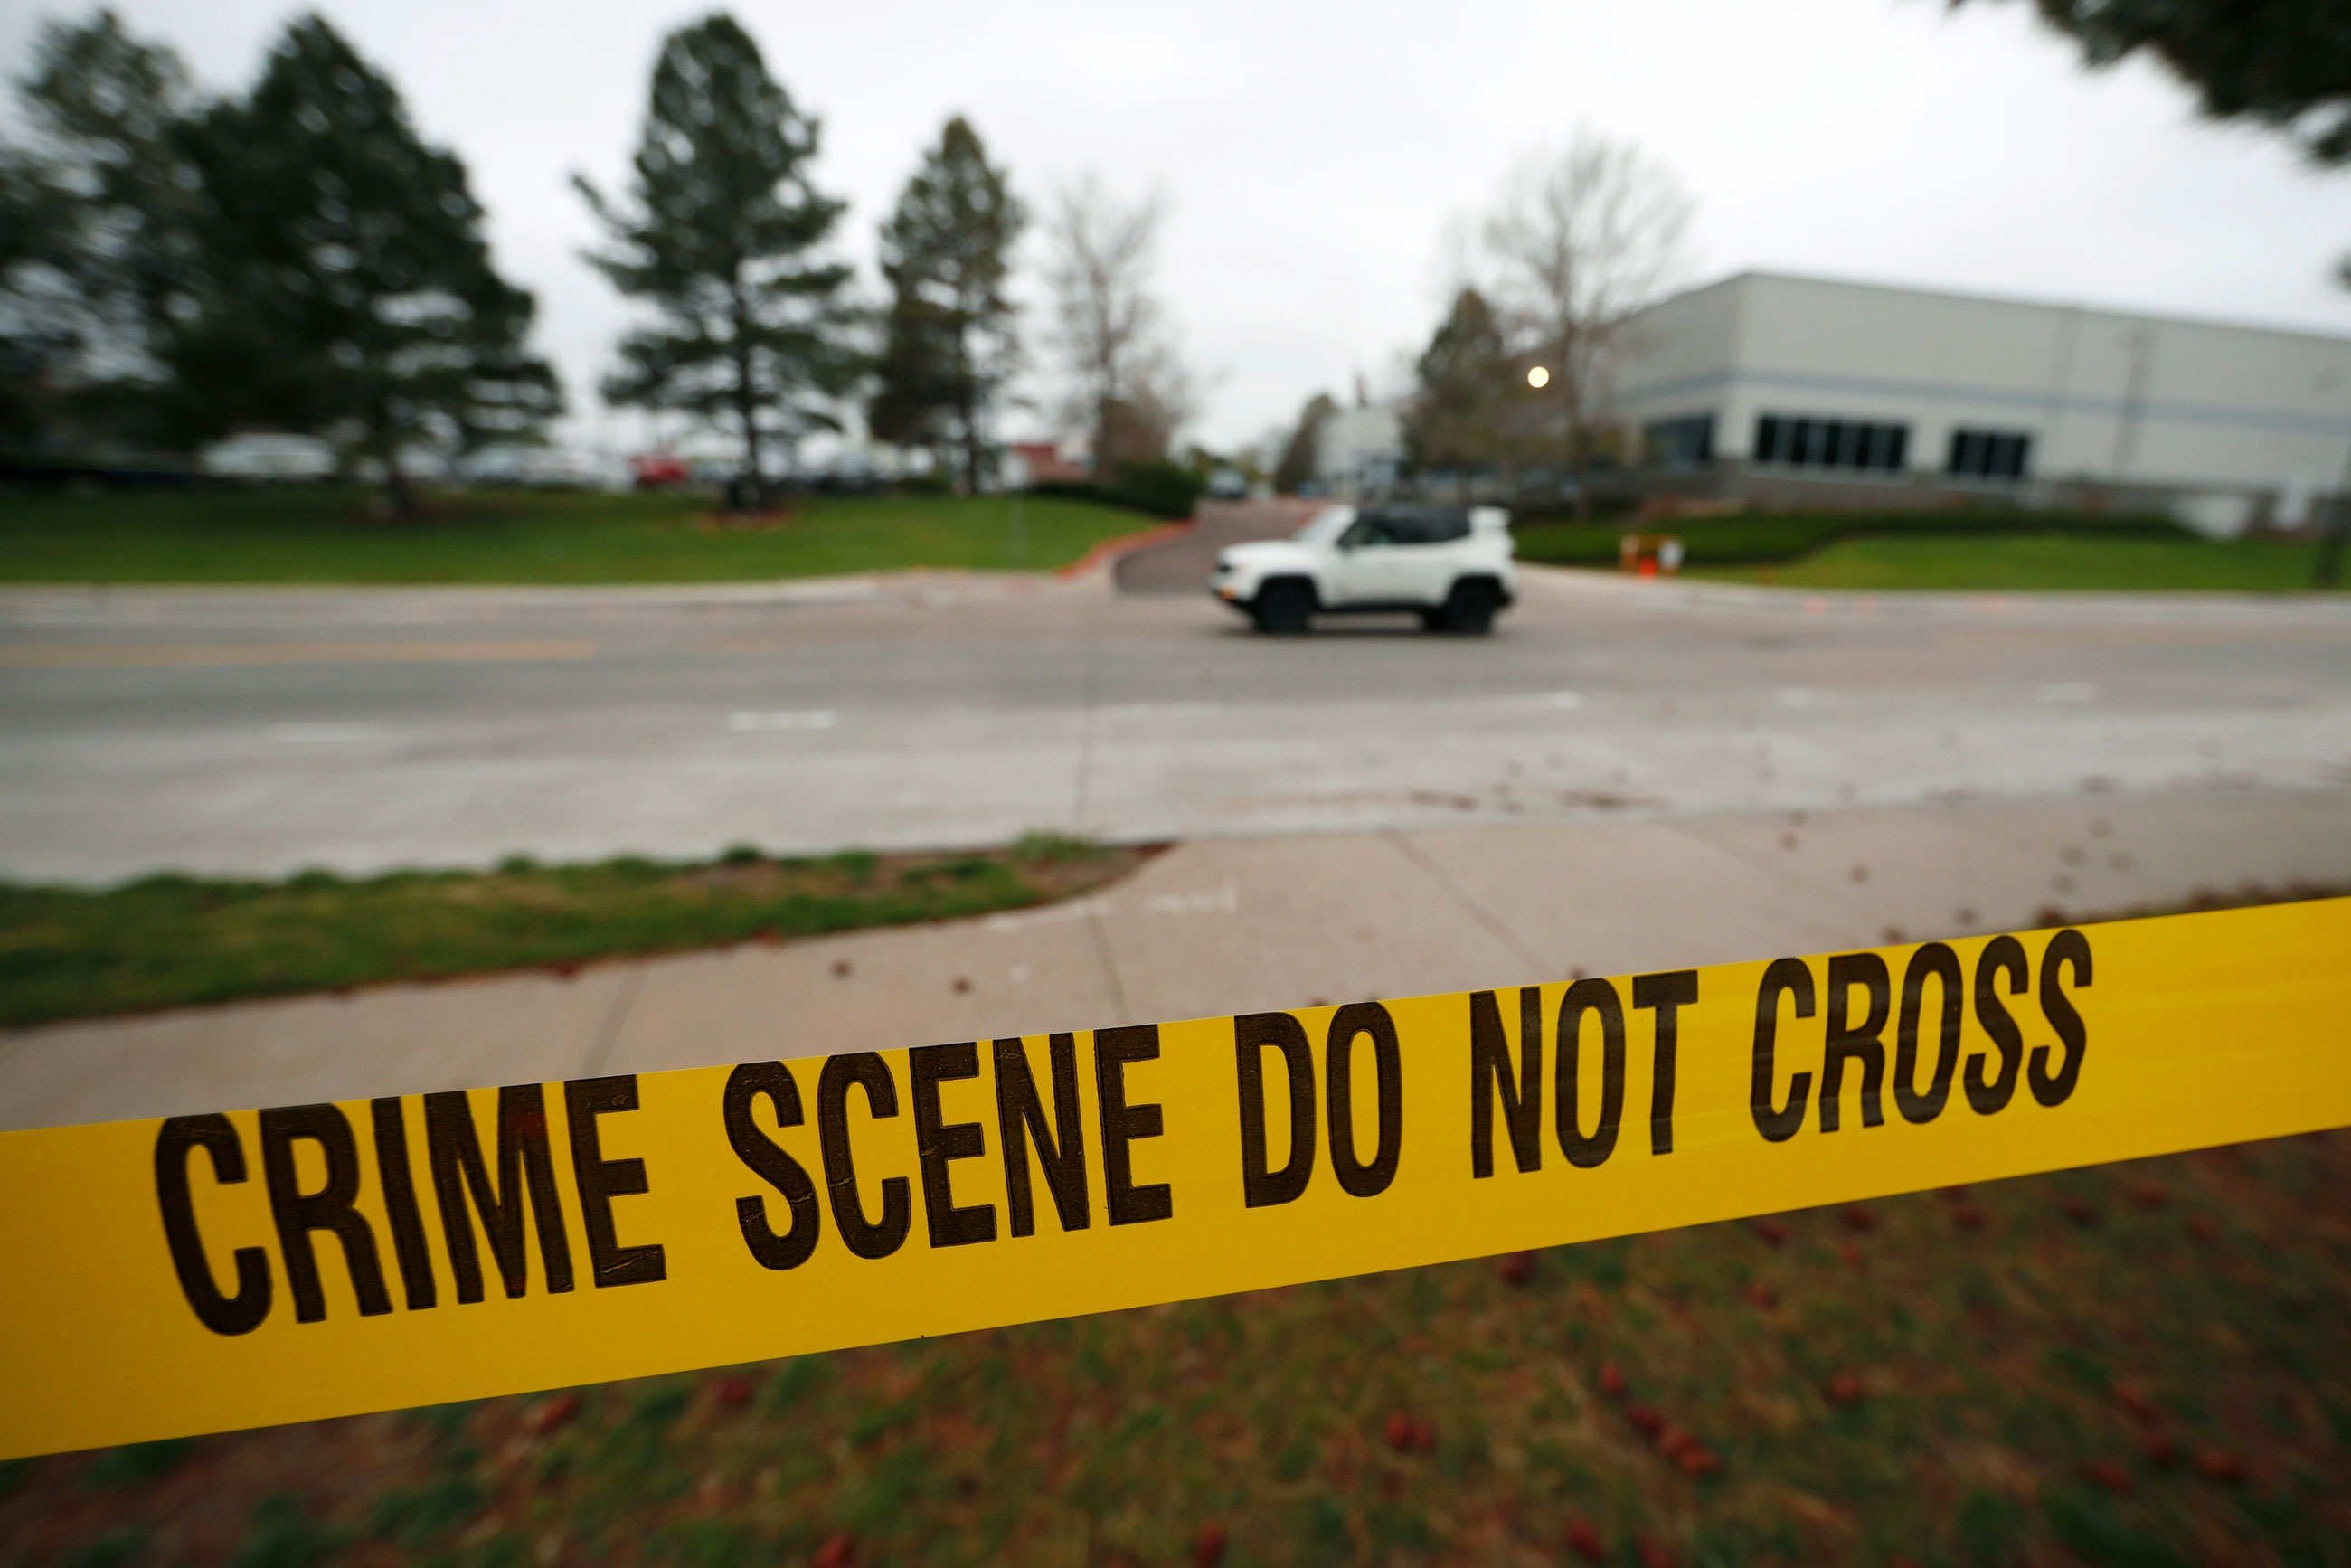 Police tape remains near the scene following Tuesday's shooting at STEM Highlands Ranch school, Wednesday, May 8, 2019, in Highlands Ranch, Colo.